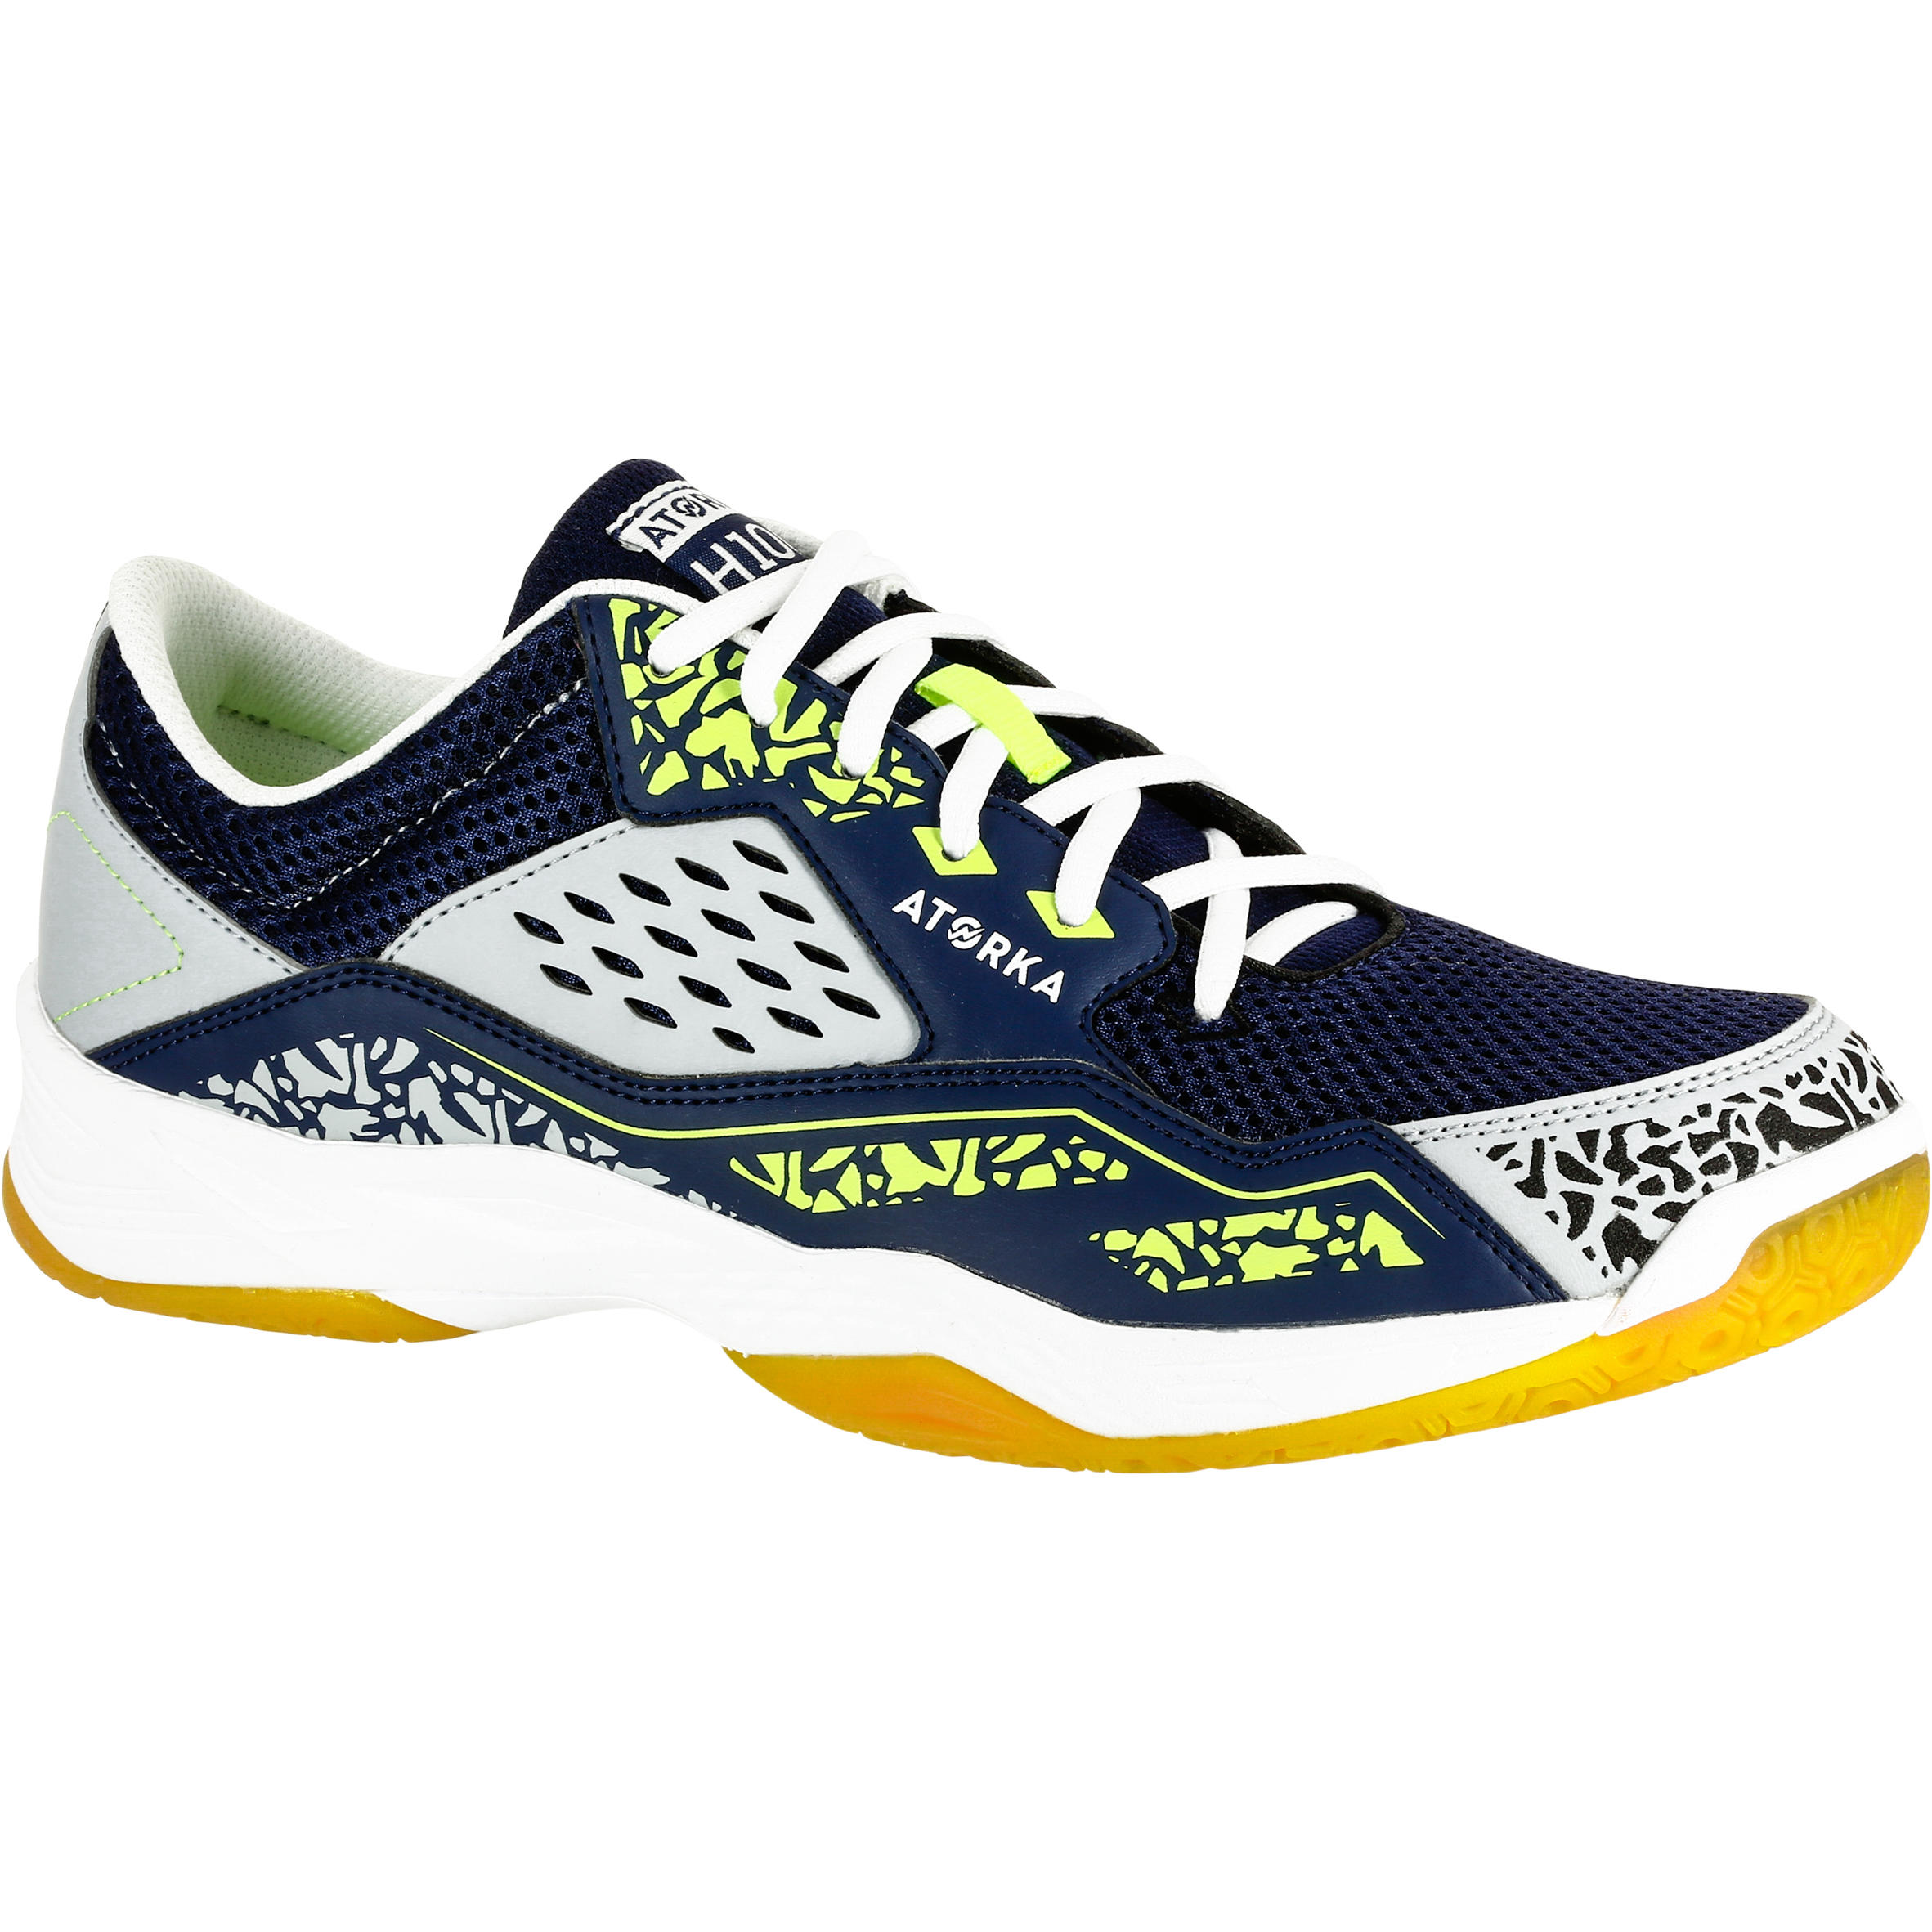 H100 Handball Shoes -...